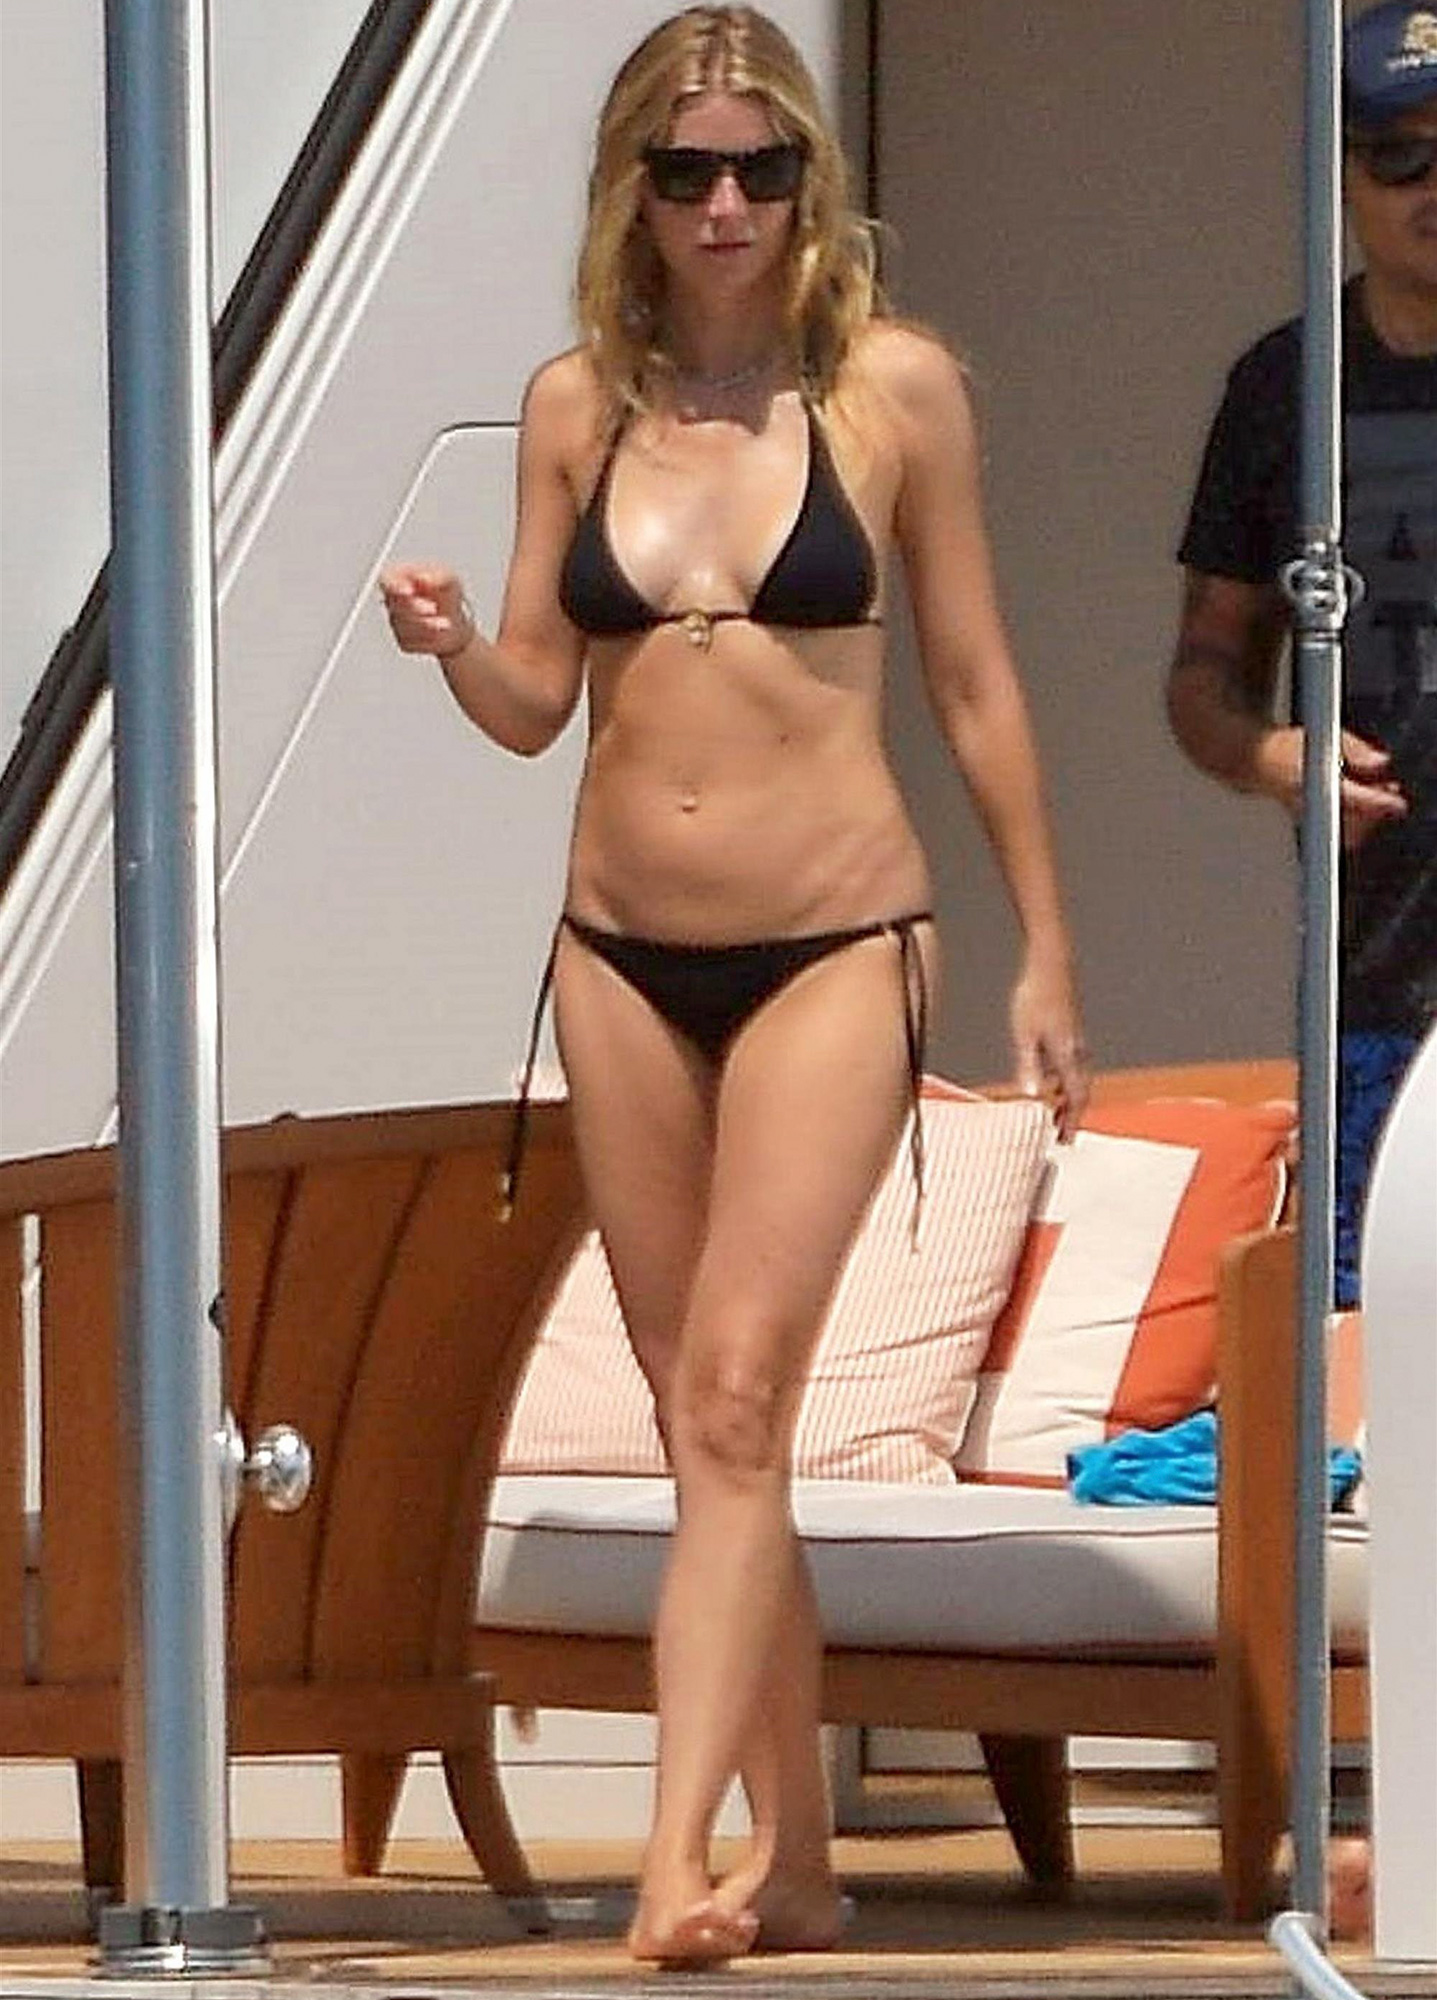 *EXCLUSIVE* Gwyneth Paltrow shows off her incredible physique in St Tropez